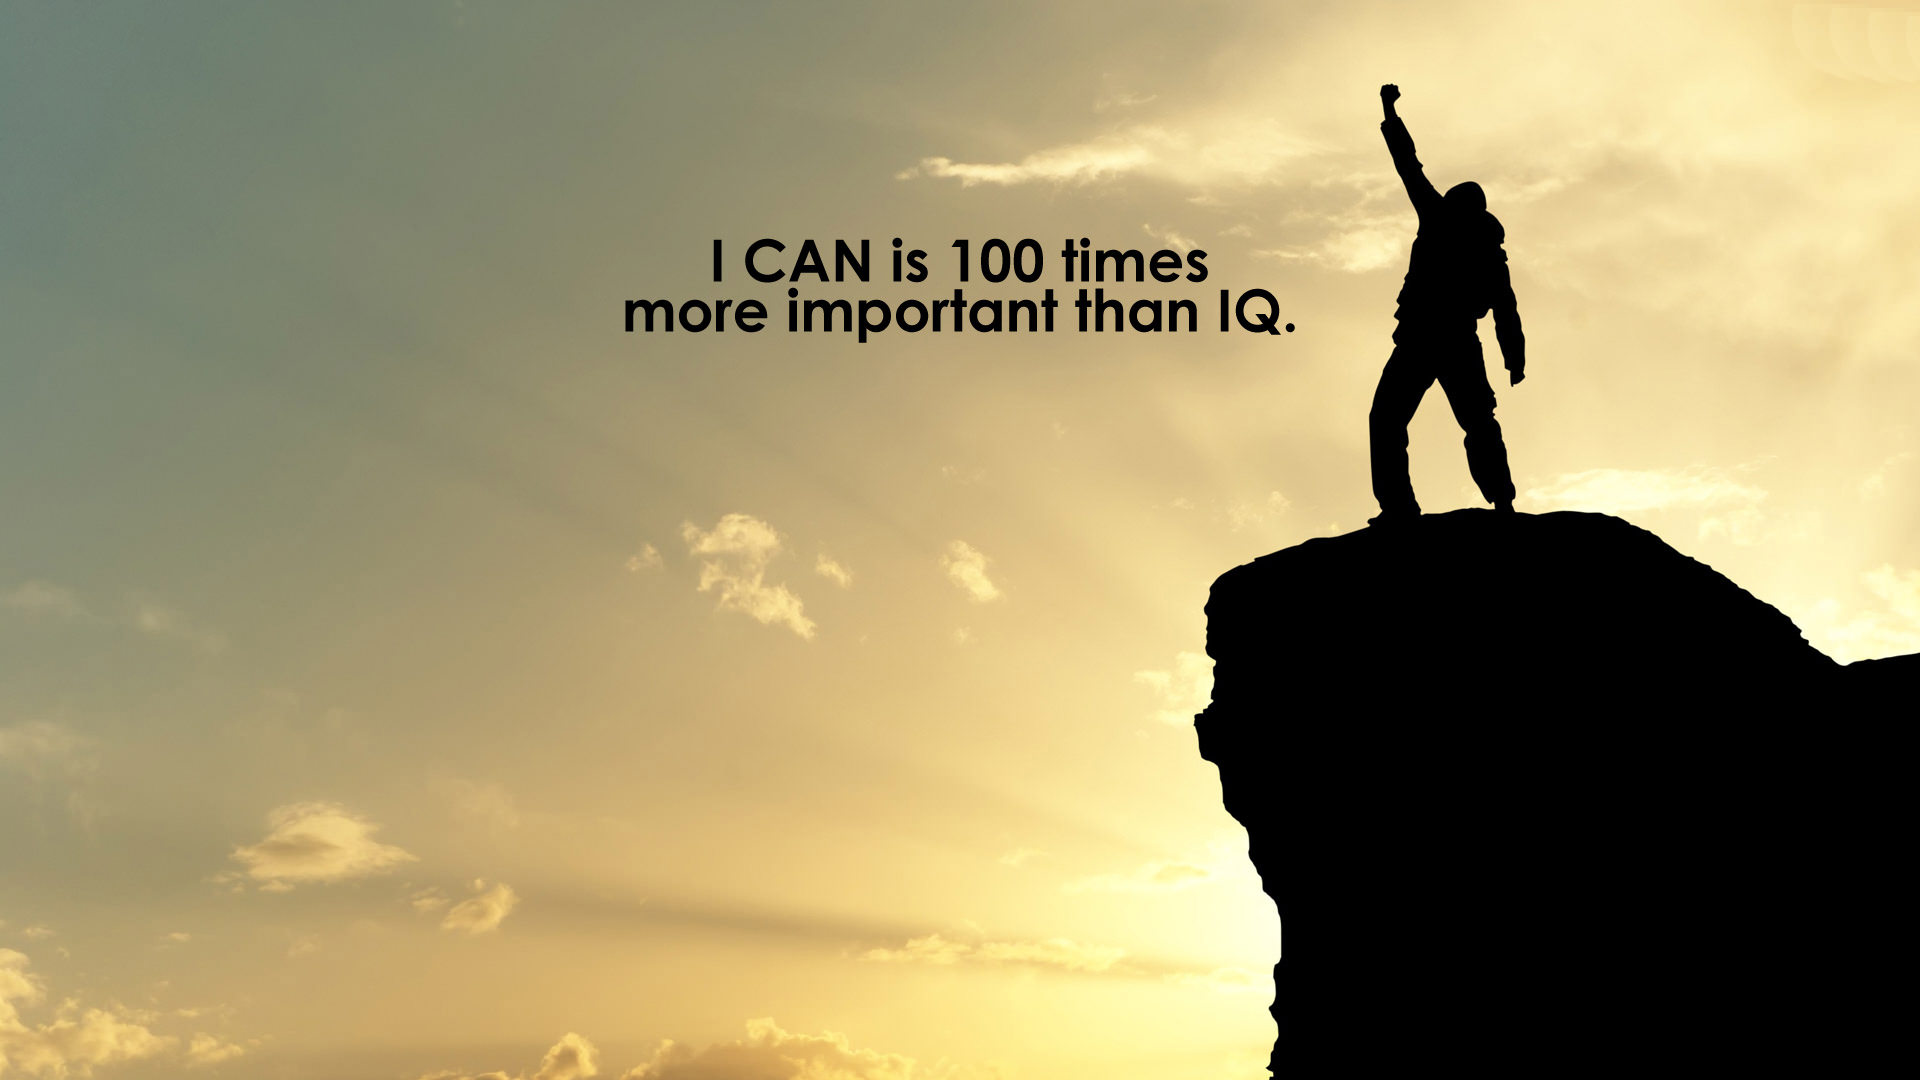 40 Motivational and Inspirational Quotes Wallpapers Posters 1920x1080